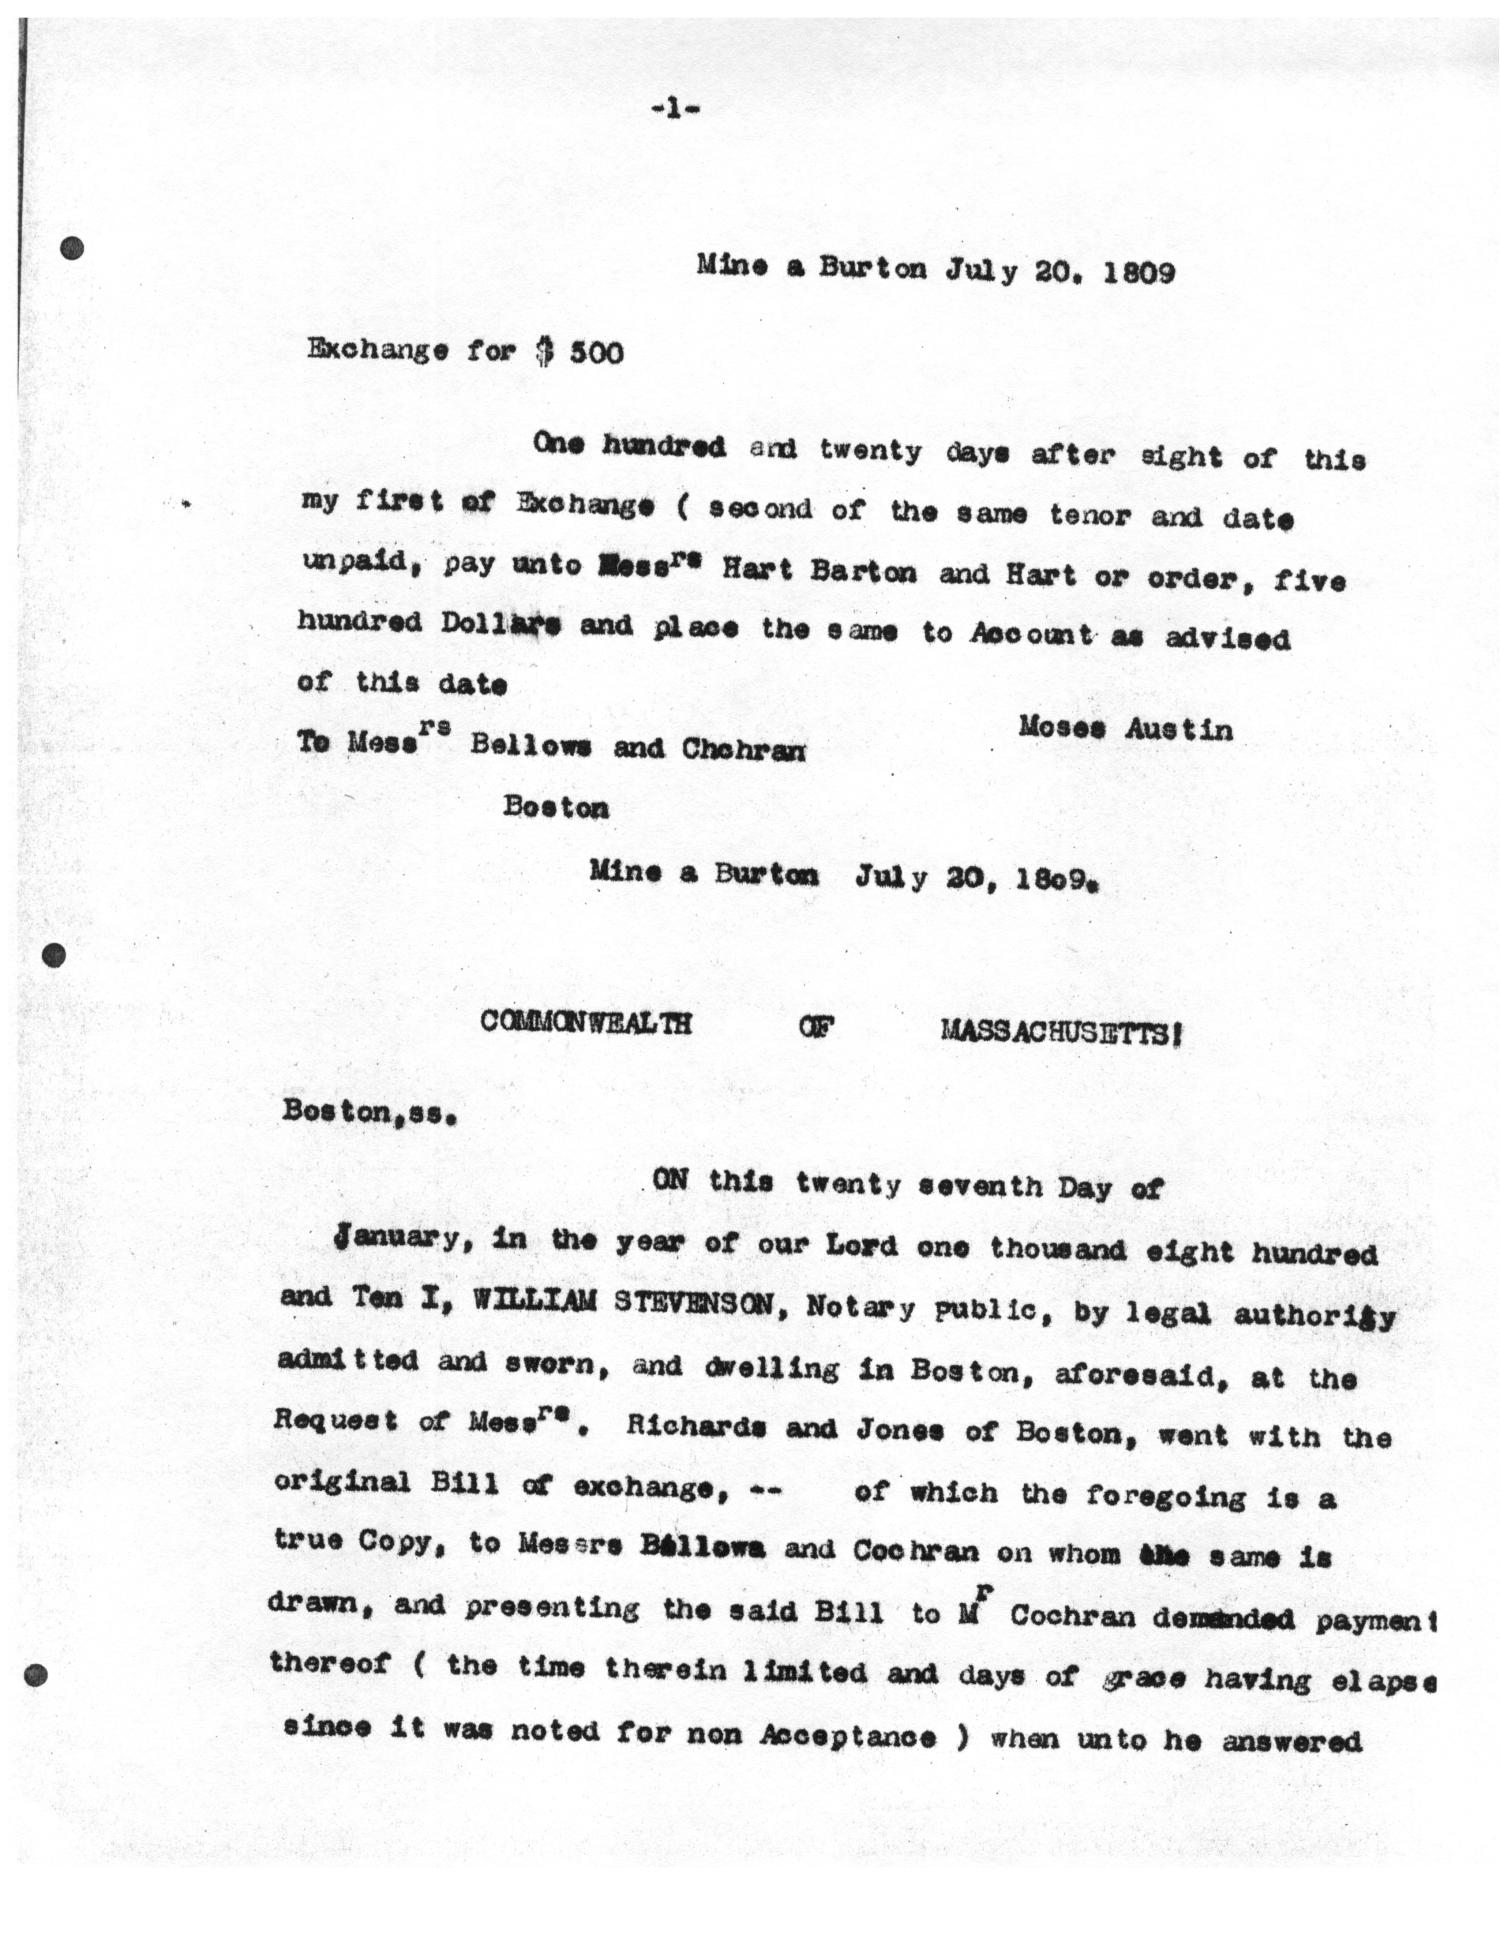 Transcript of notarized bill of exchange from moses austin to transcript of notarized bill of exchange from moses austin to bellows and cochran july 20 1809 the portal to texas history altavistaventures Gallery